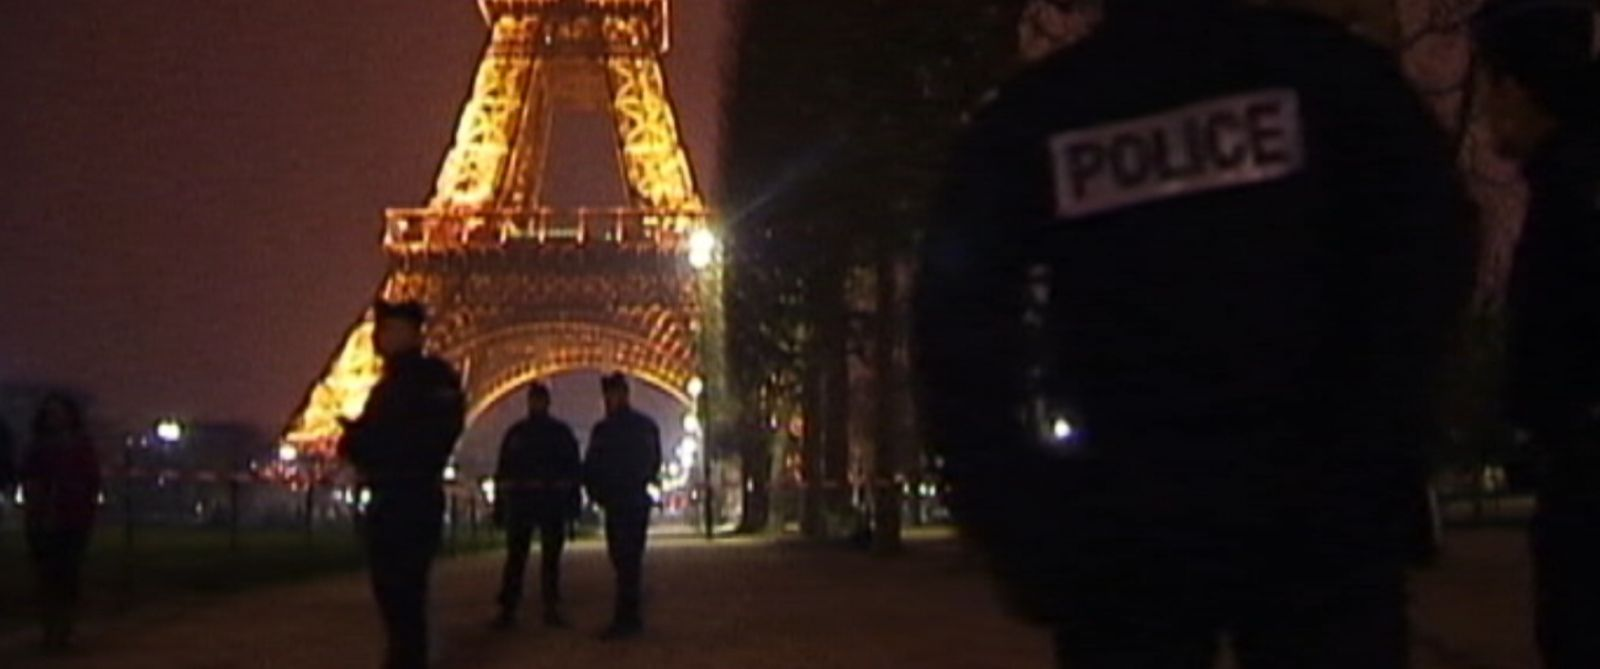 PHOTO: French authorities are on alert after drones were spotted over major Paris landmarks during the last two nights.